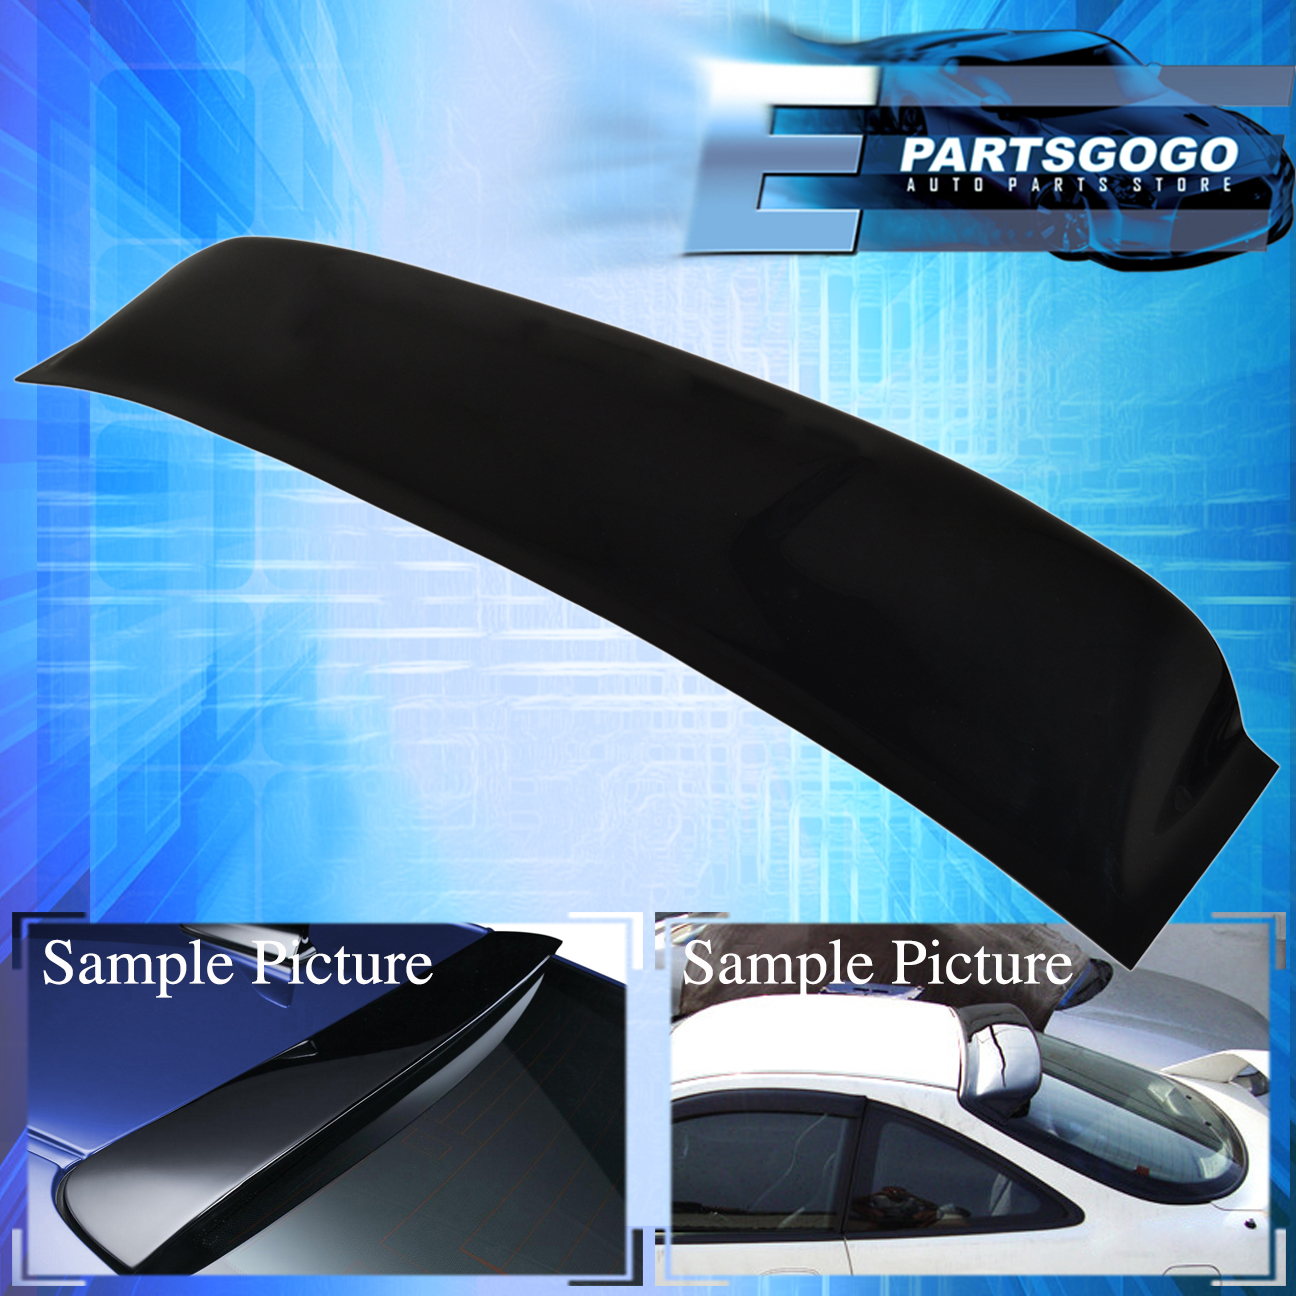 Details about Toyota Camry 92-96 4Dr Rear Windshield Sun Roof Visor Black  With 3M Tape 79a21e89c19